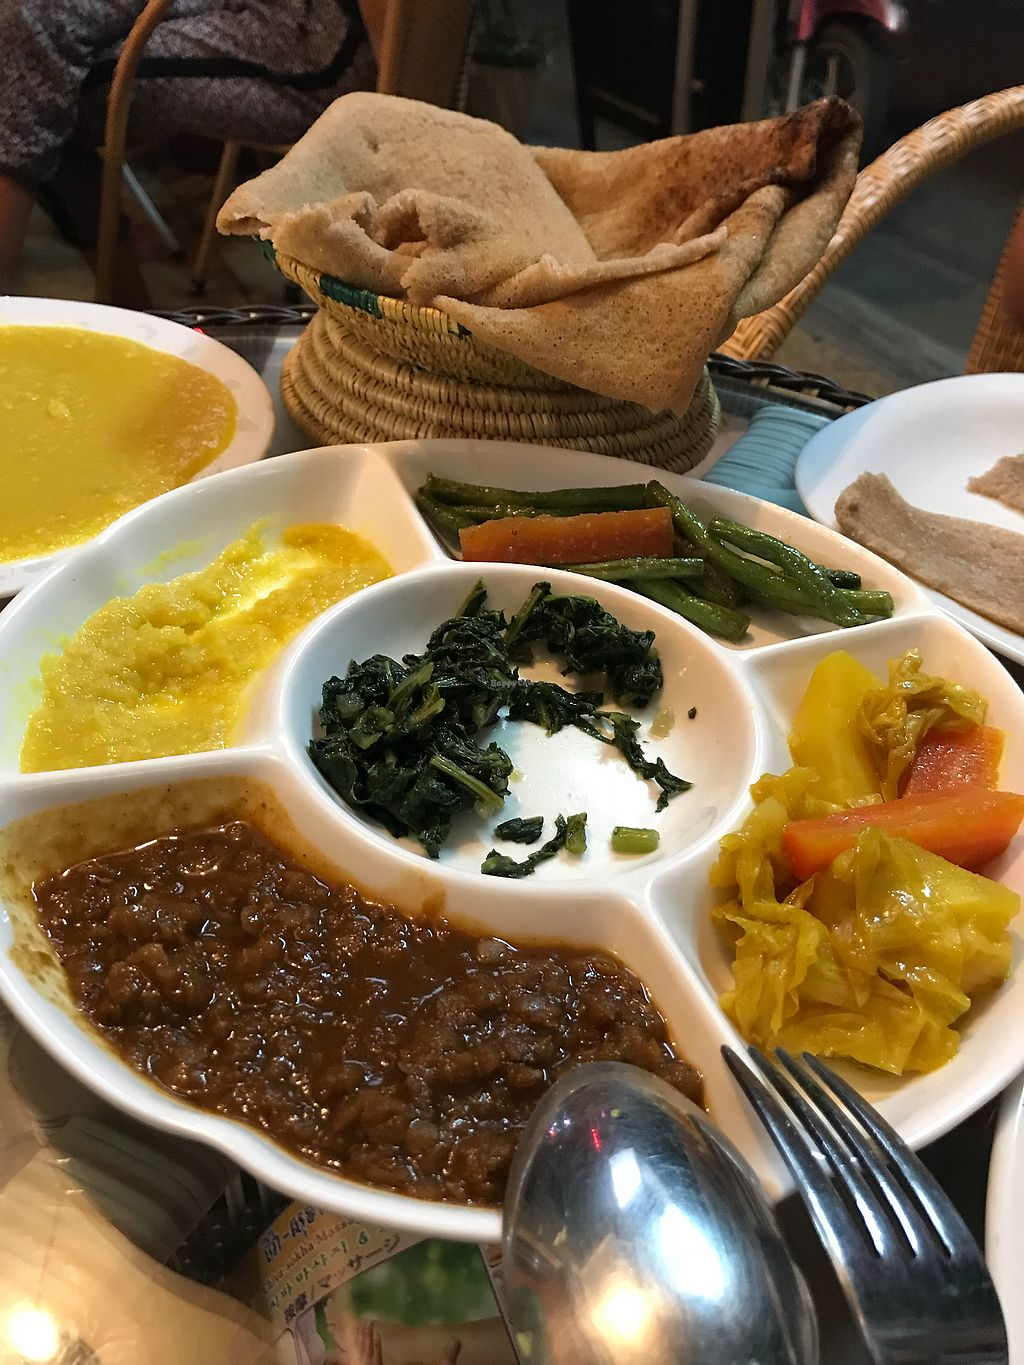 """Photo of Sara Ethiopian Restaurant  by <a href=""""/members/profile/vichinol"""">vichinol</a> <br/>Vegan Combo <br/> December 30, 2017  - <a href='/contact/abuse/image/102572/340840'>Report</a>"""